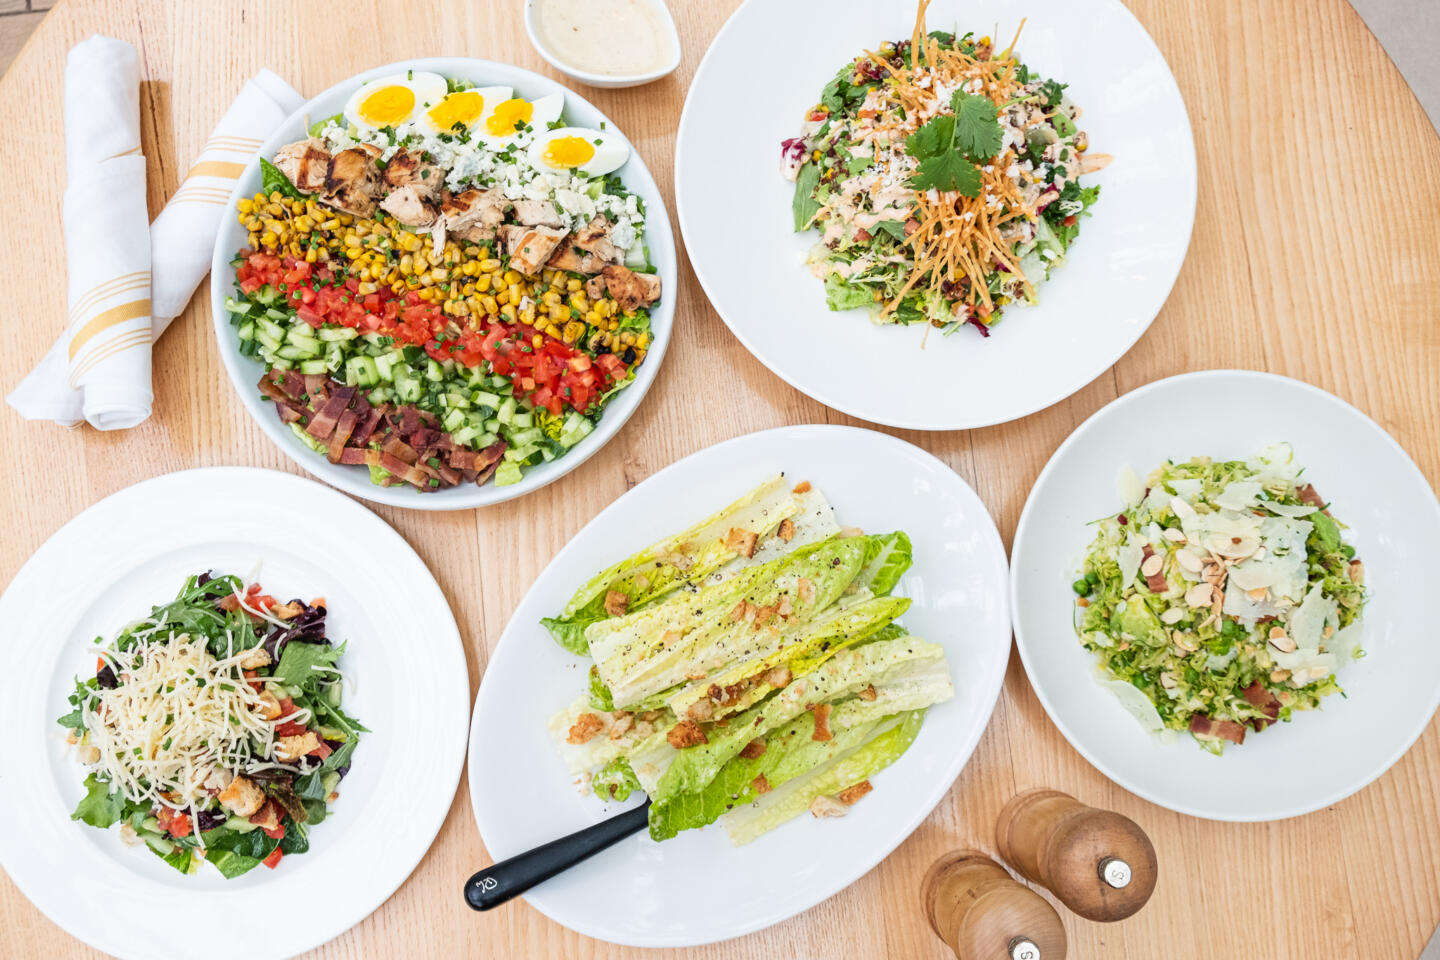 Salads from Summer House